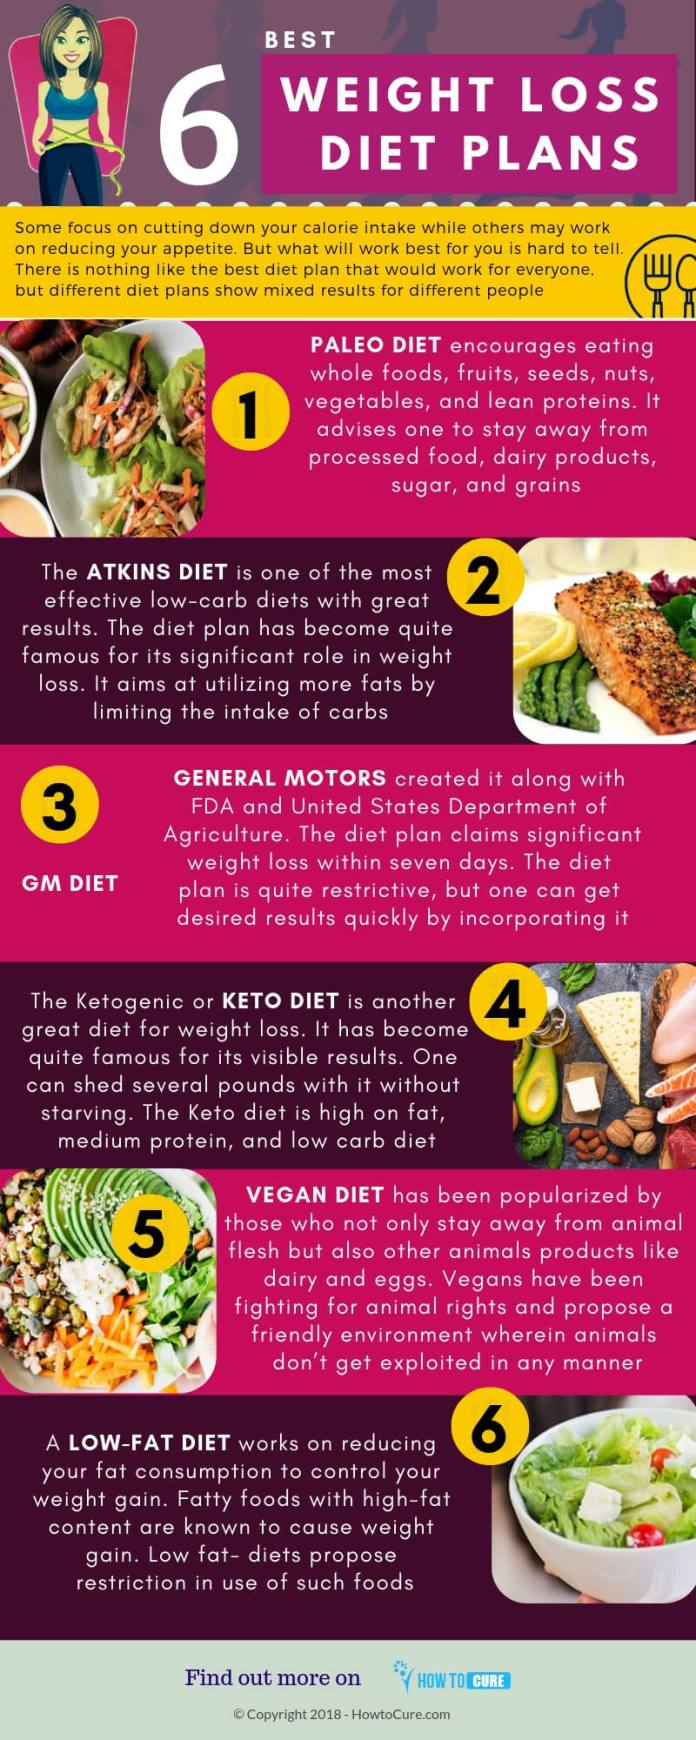 beight loss diet plans-infographic